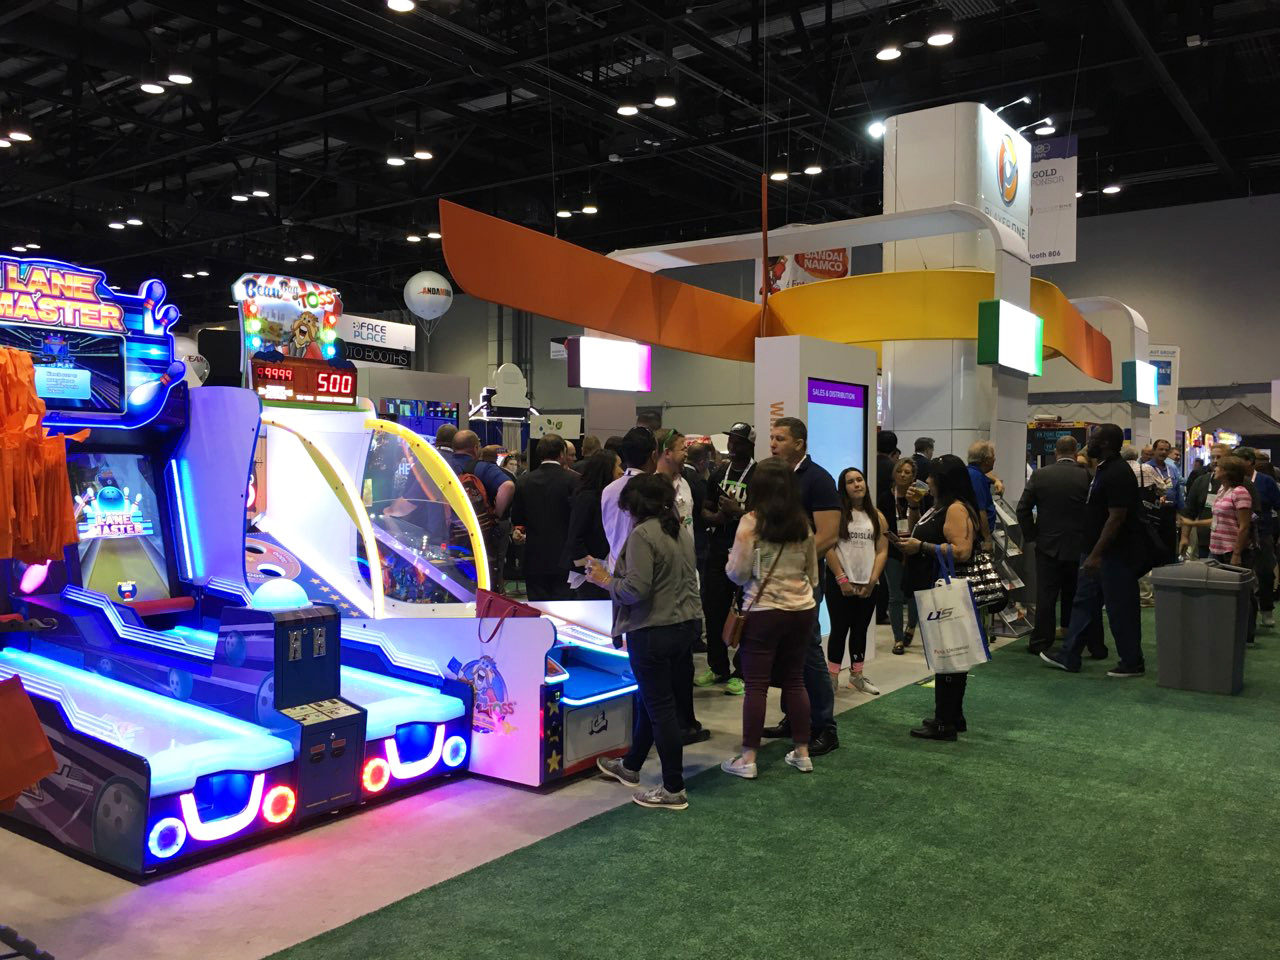 Making the Most of Your Time at IAAPA